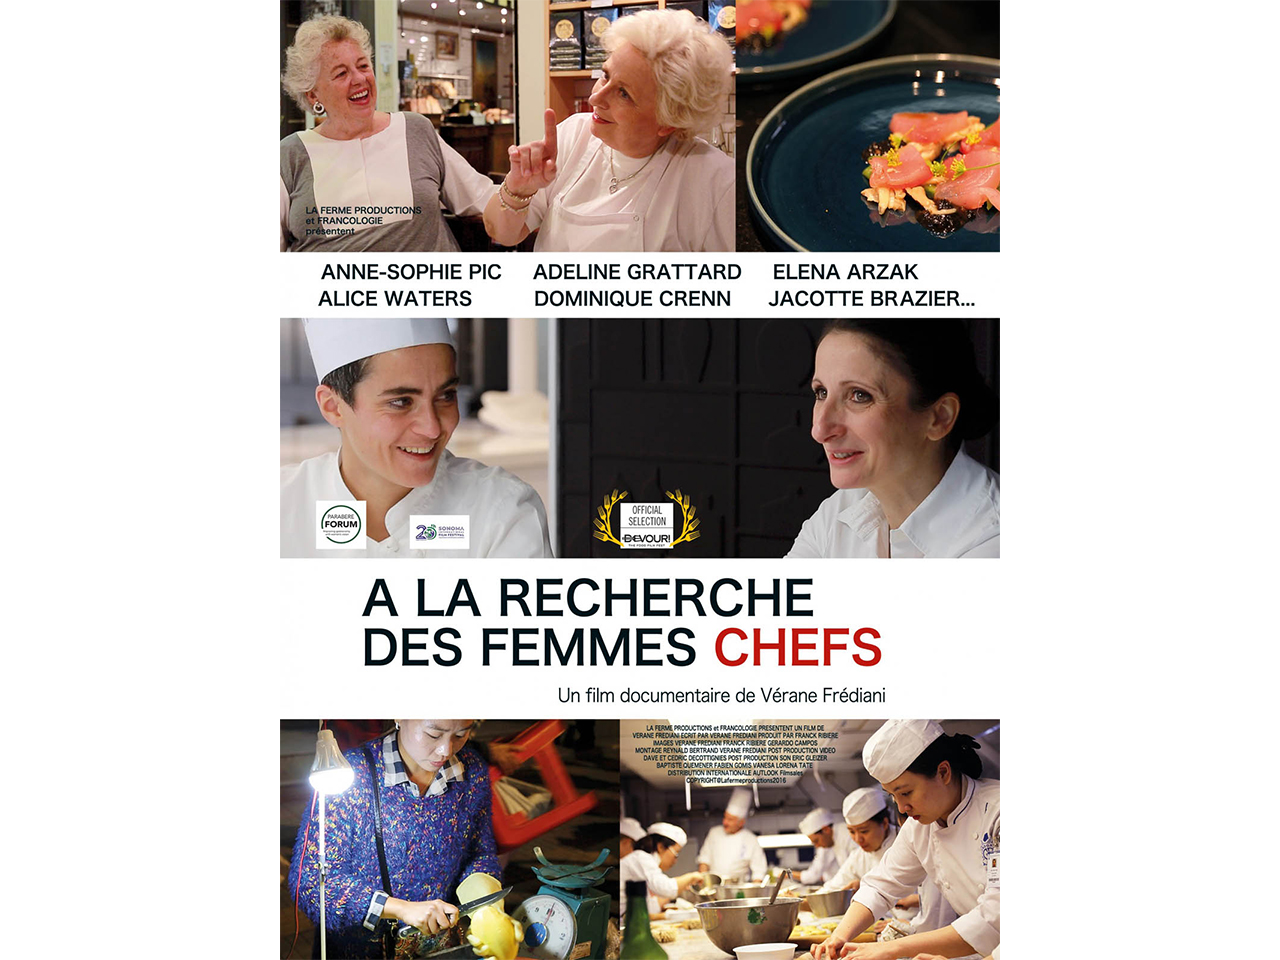 A la recherche des femmes chefs, Anne-Sophie Pic, Kamilla Seidler, Elena Arzak, Adeline Grattard, Barbara Lynch, Soledad Nardelli, Dominique Crenn, Jacotte Brazier, Alice Waters, Paz Levinson